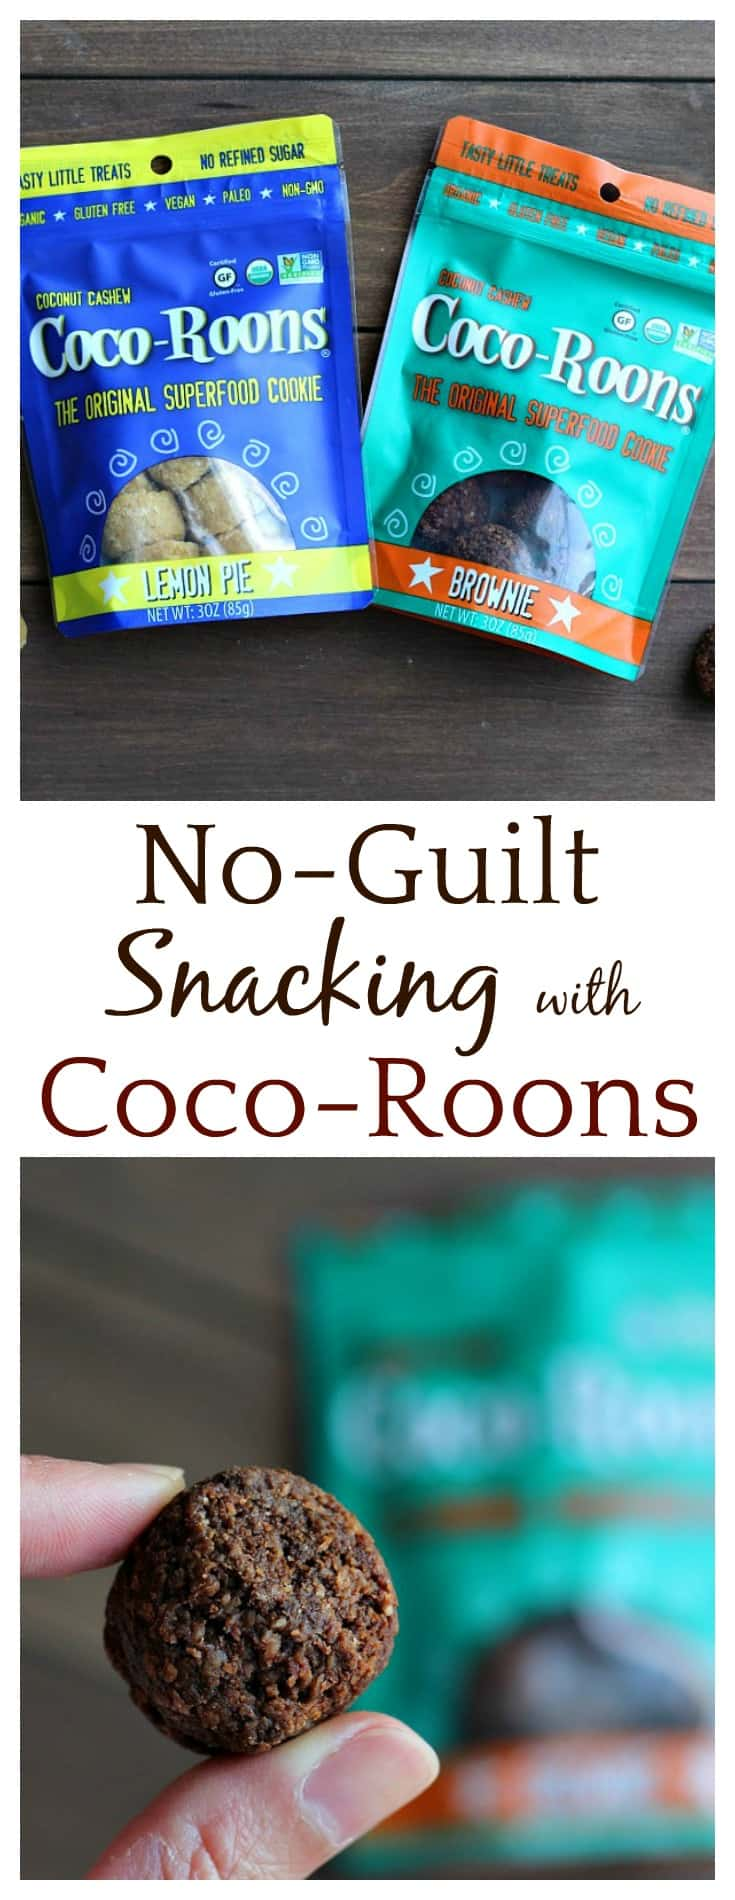 Sejoyia Coco-Roons Cookies make feeling guilty about snacking a thing of the past! These are the original superfood cookies and come in delicious flavors like lemon pie and brownie!